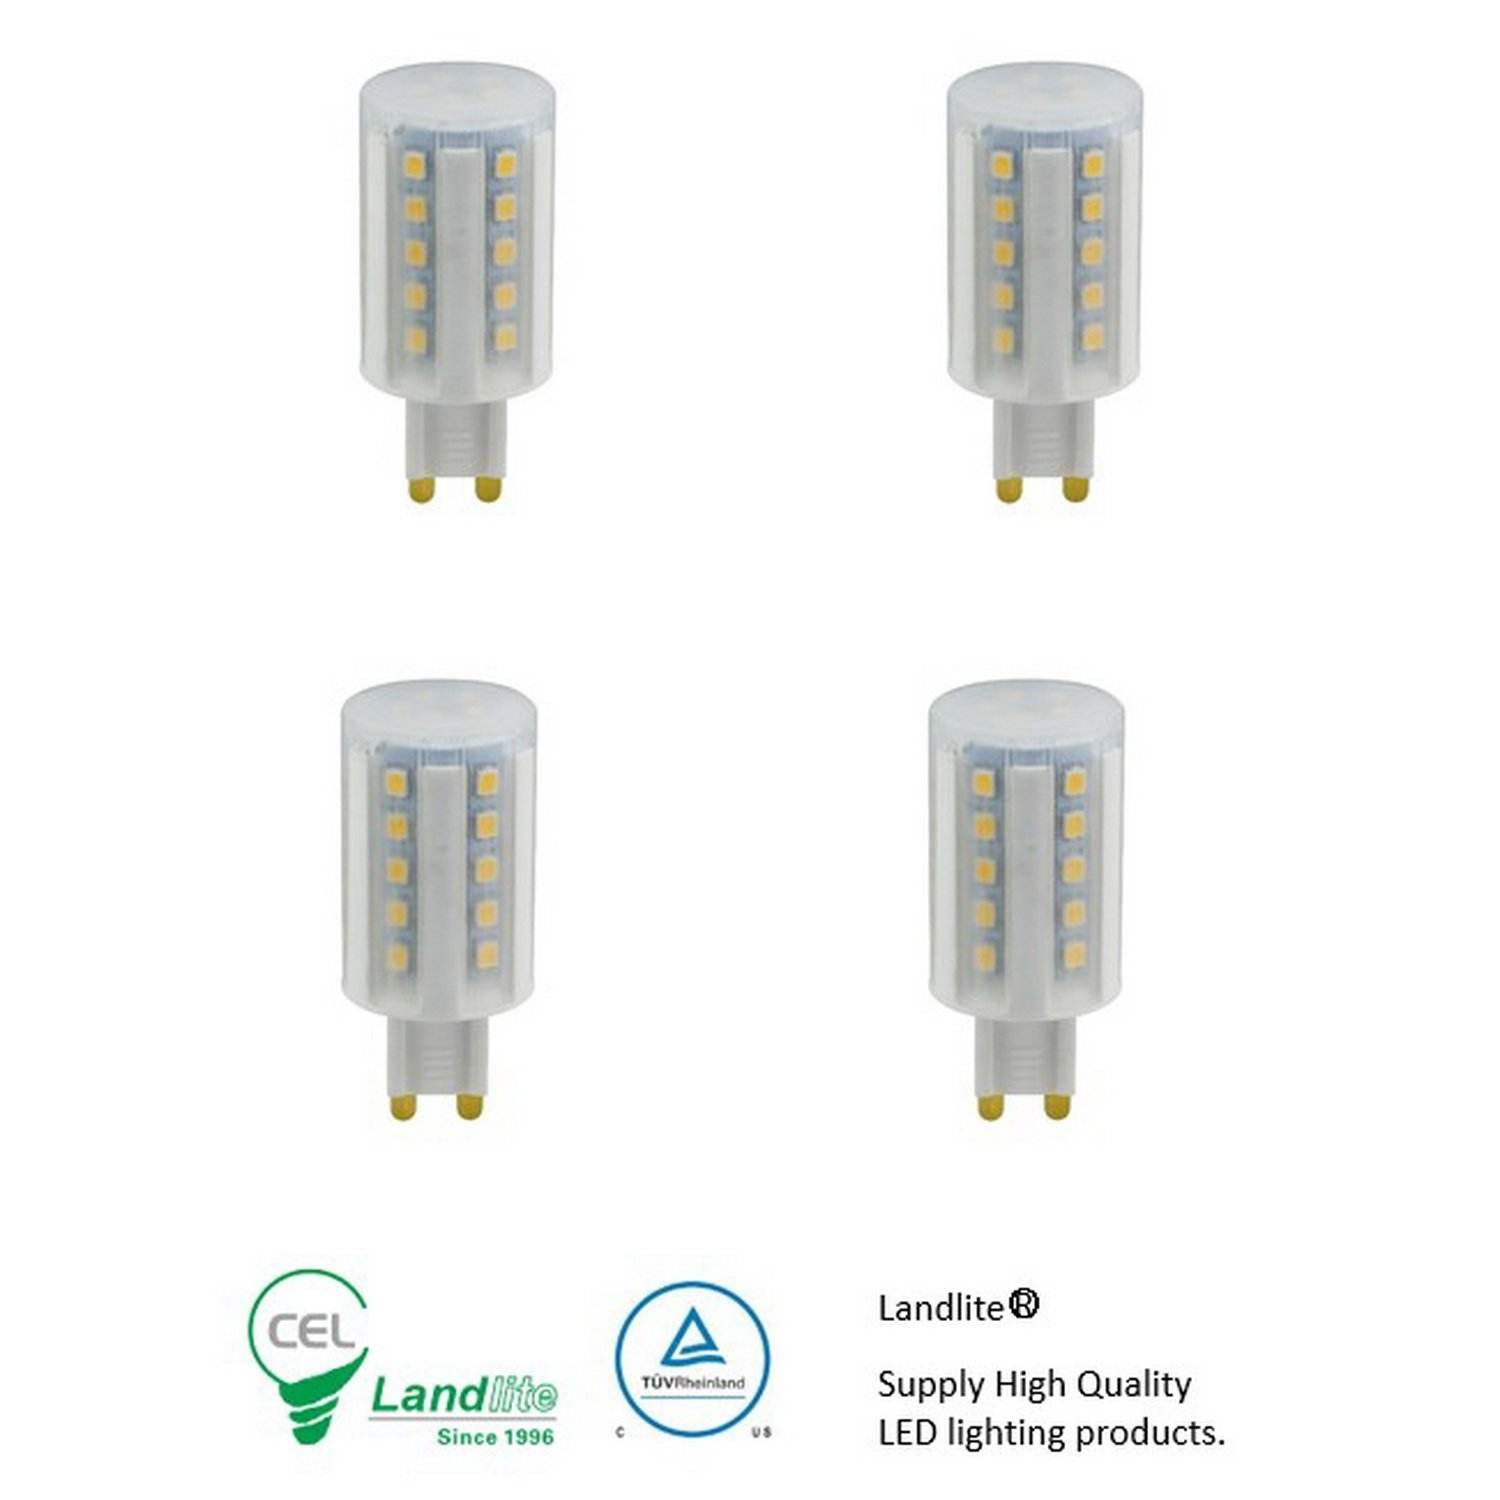 Landlite High Power Dimmable LED G9 replacement bulbs 120V 5W 4PKs Warmwhite 3000K